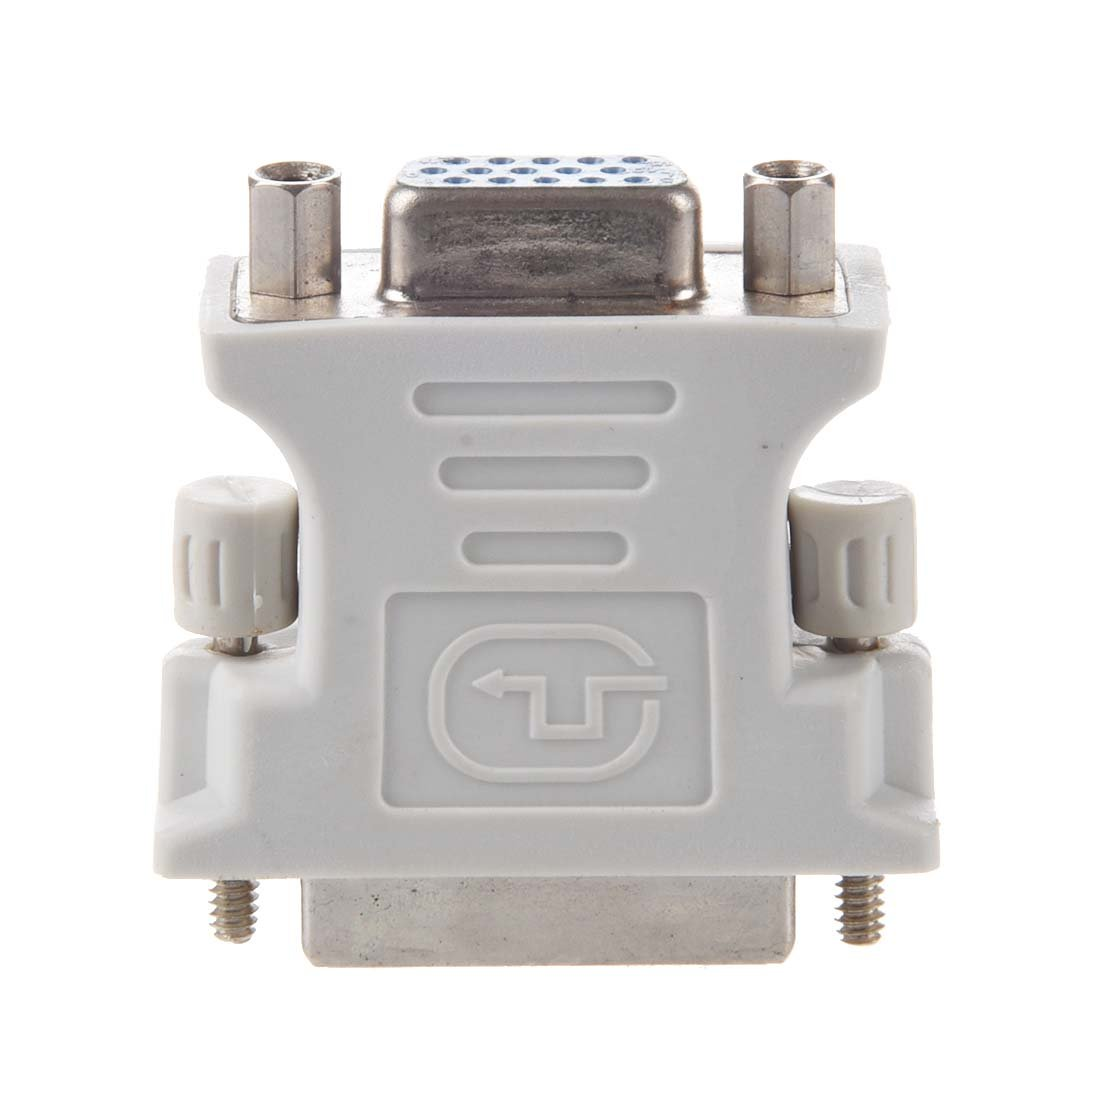 /¡/Á VGA Female DVI-D Dual Link: male Small adapter 24 R SODIAL 1 Adapter